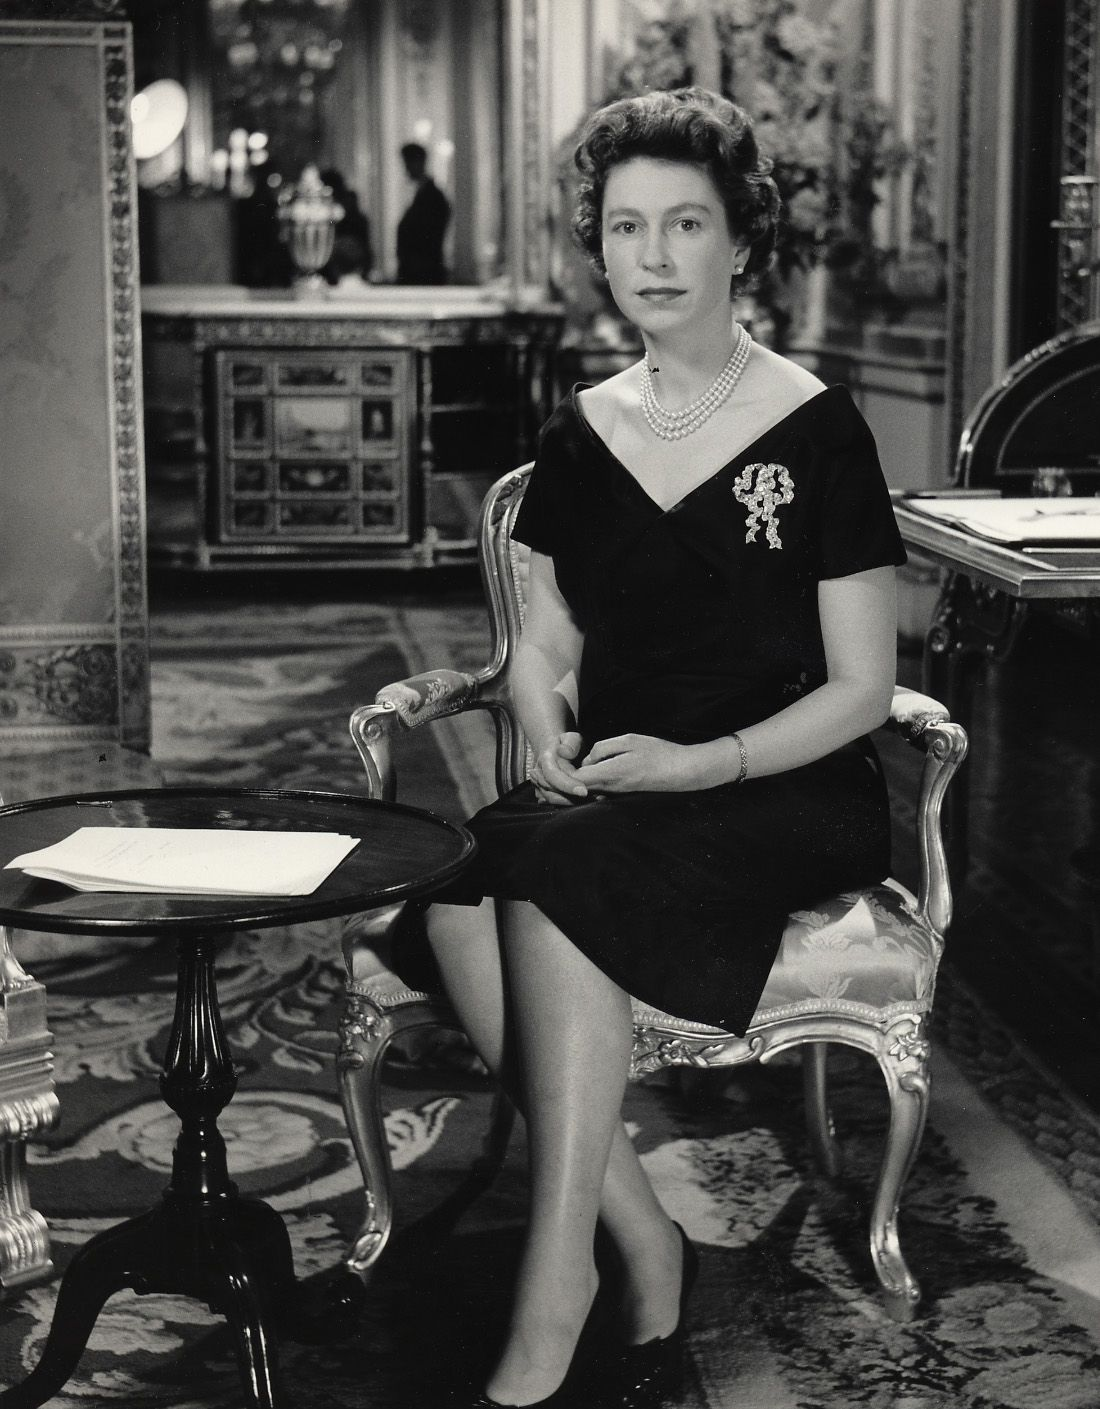 Queen Elizabeth II 60 Years on the Throne (With images